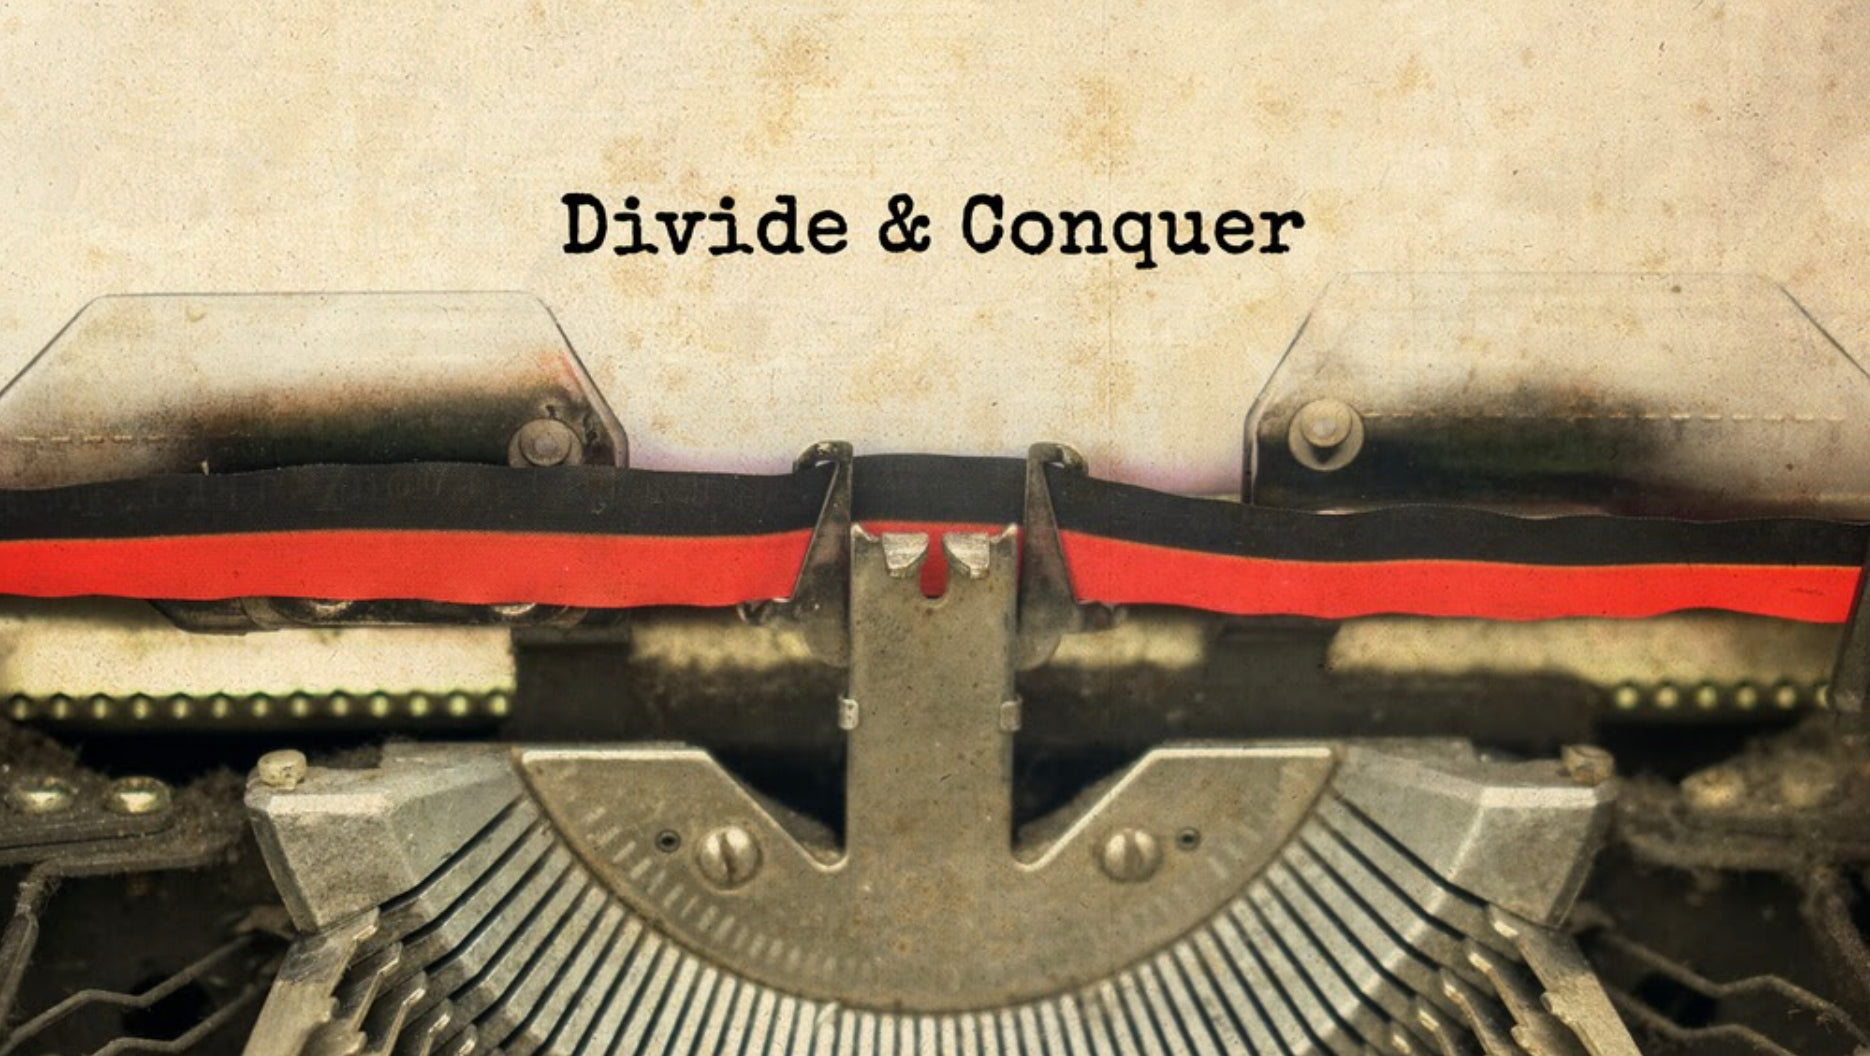 Divide and conquer organization ideas